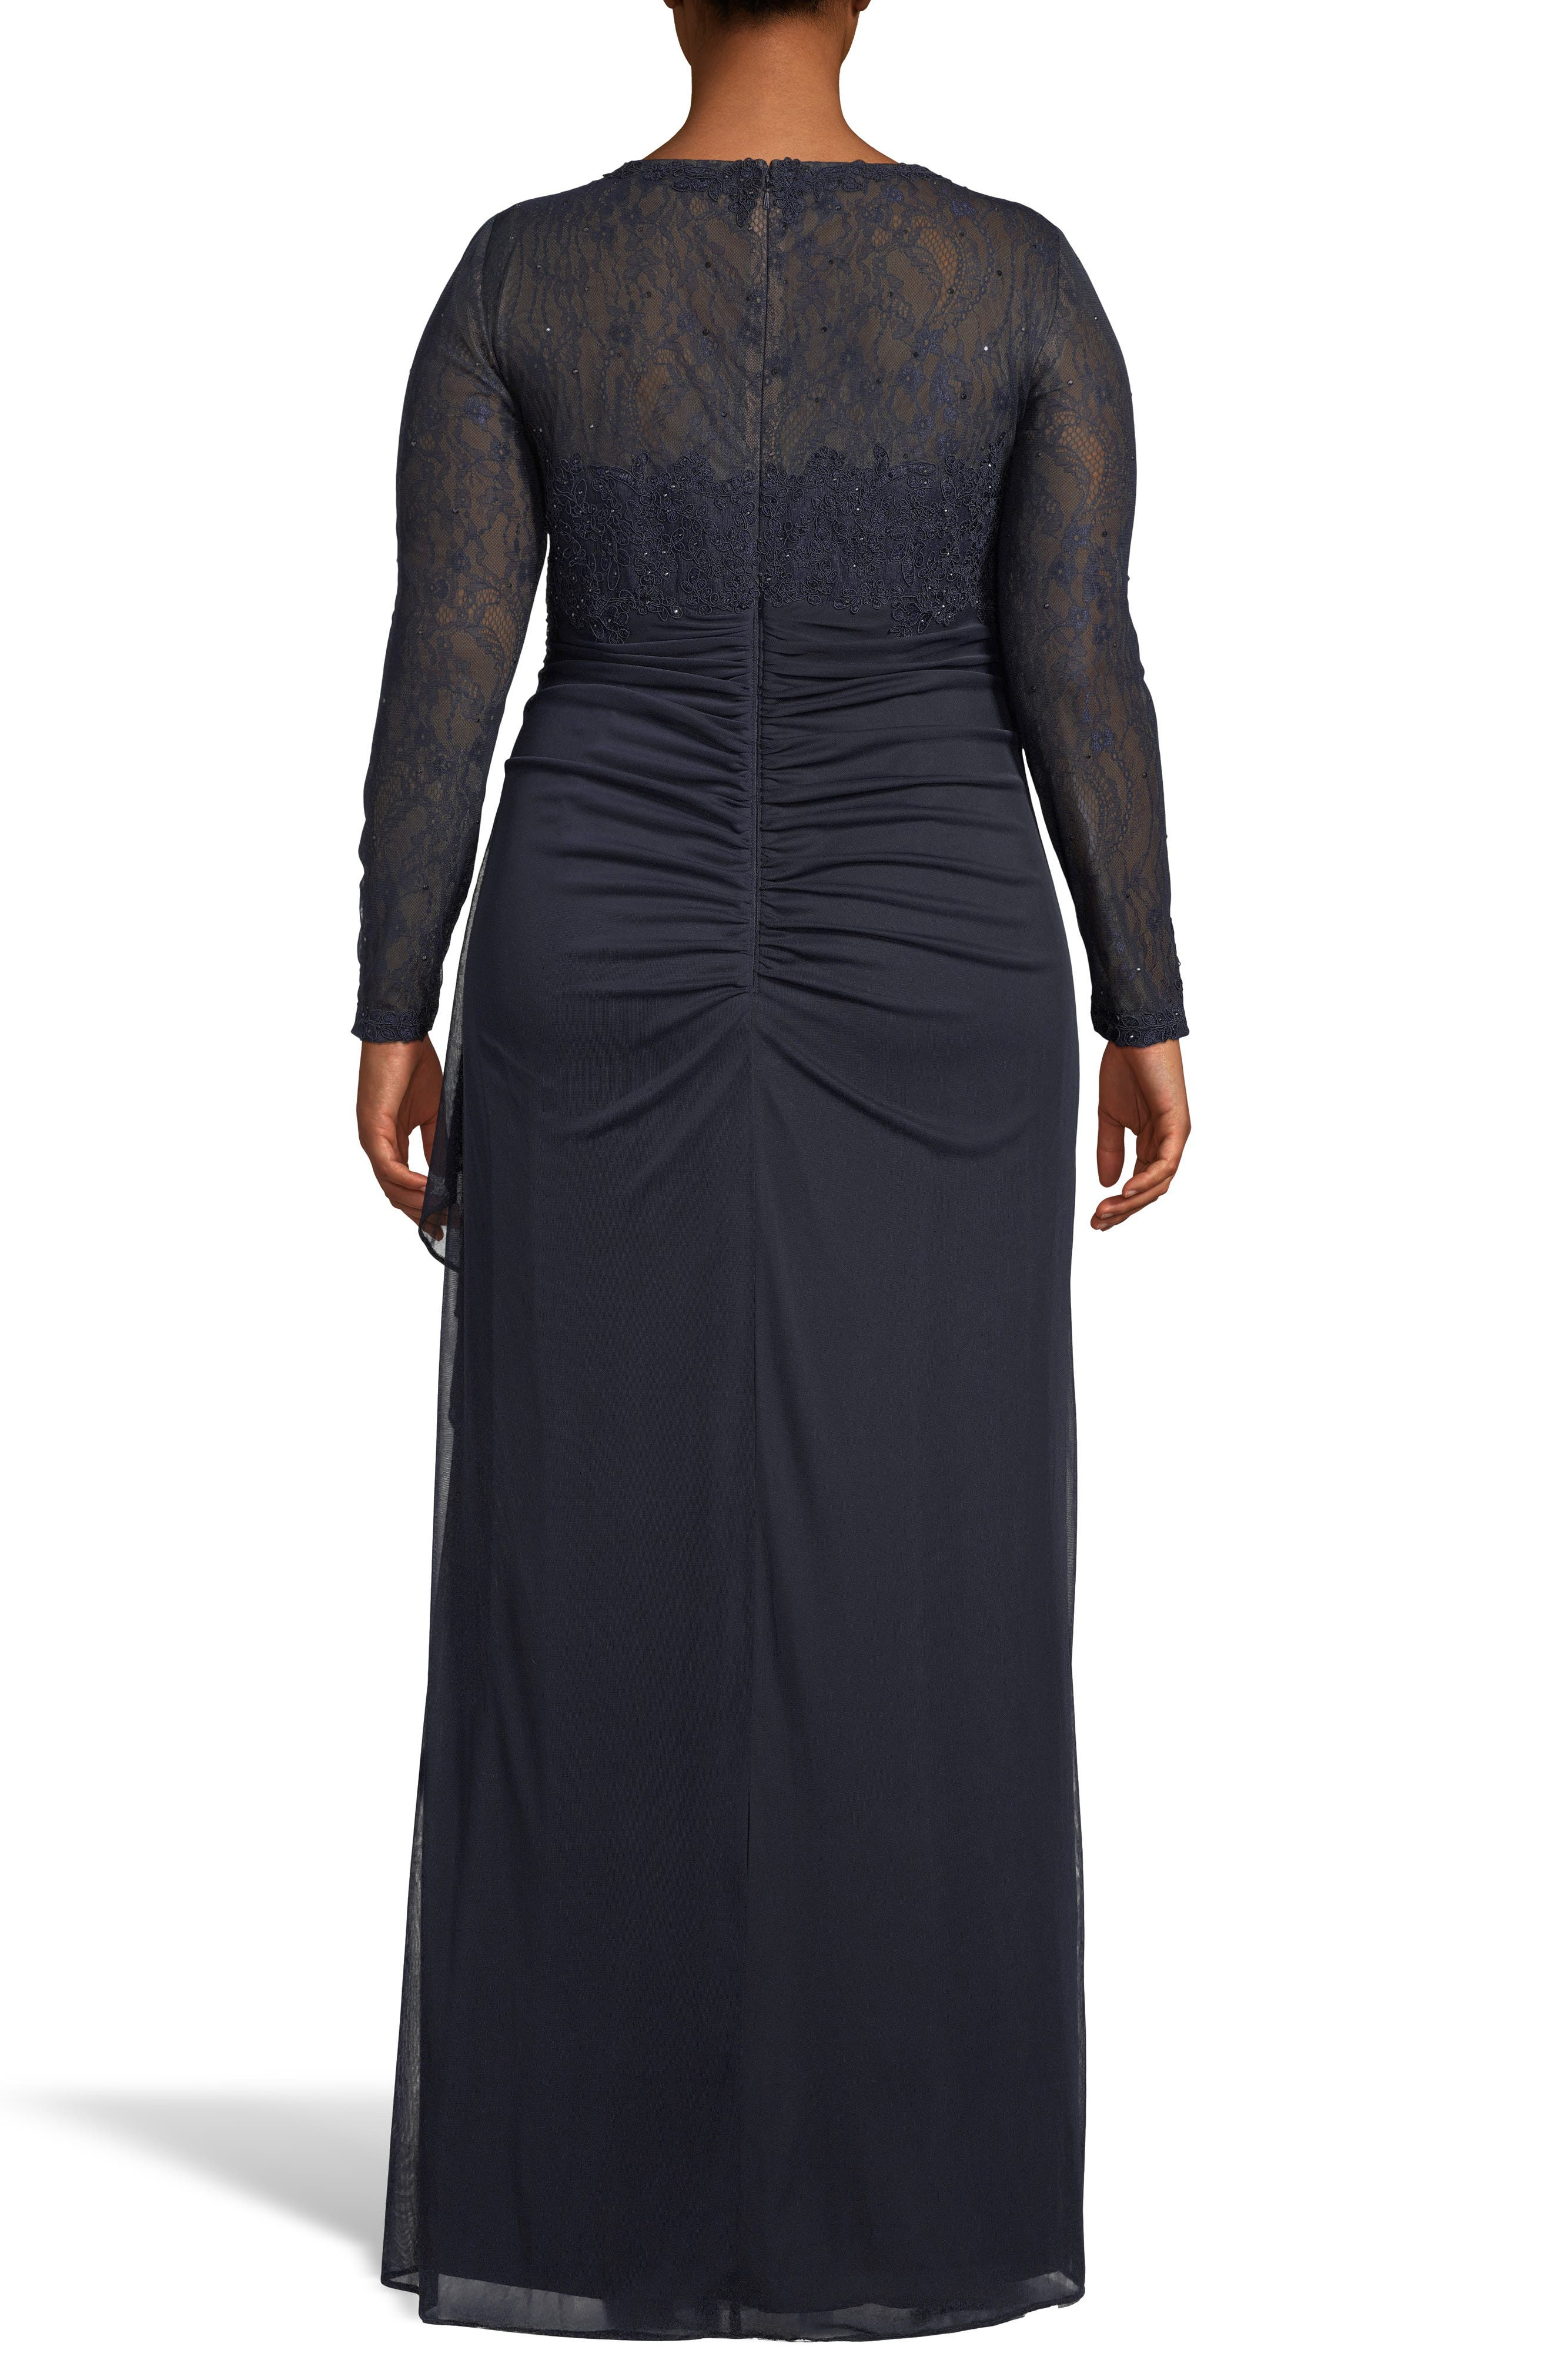 XSCAPE, Lace Bodice Ruched Evening Dress, Alternate thumbnail 2, color, NAVY